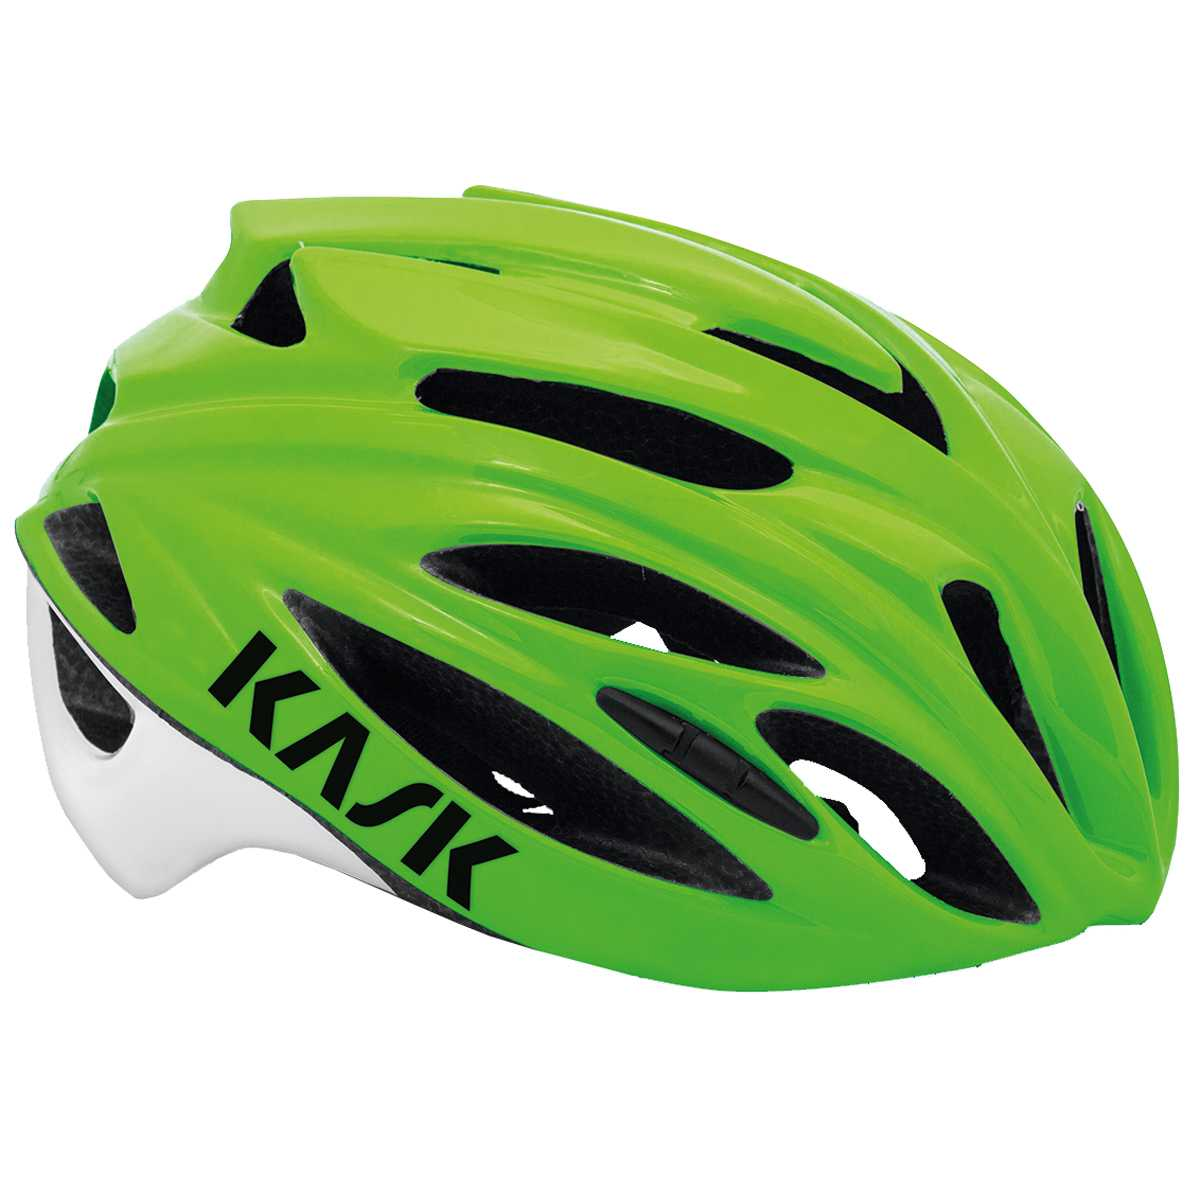 Kask Rapido Road Helmet - Medium (52-58cm) - Lime Green